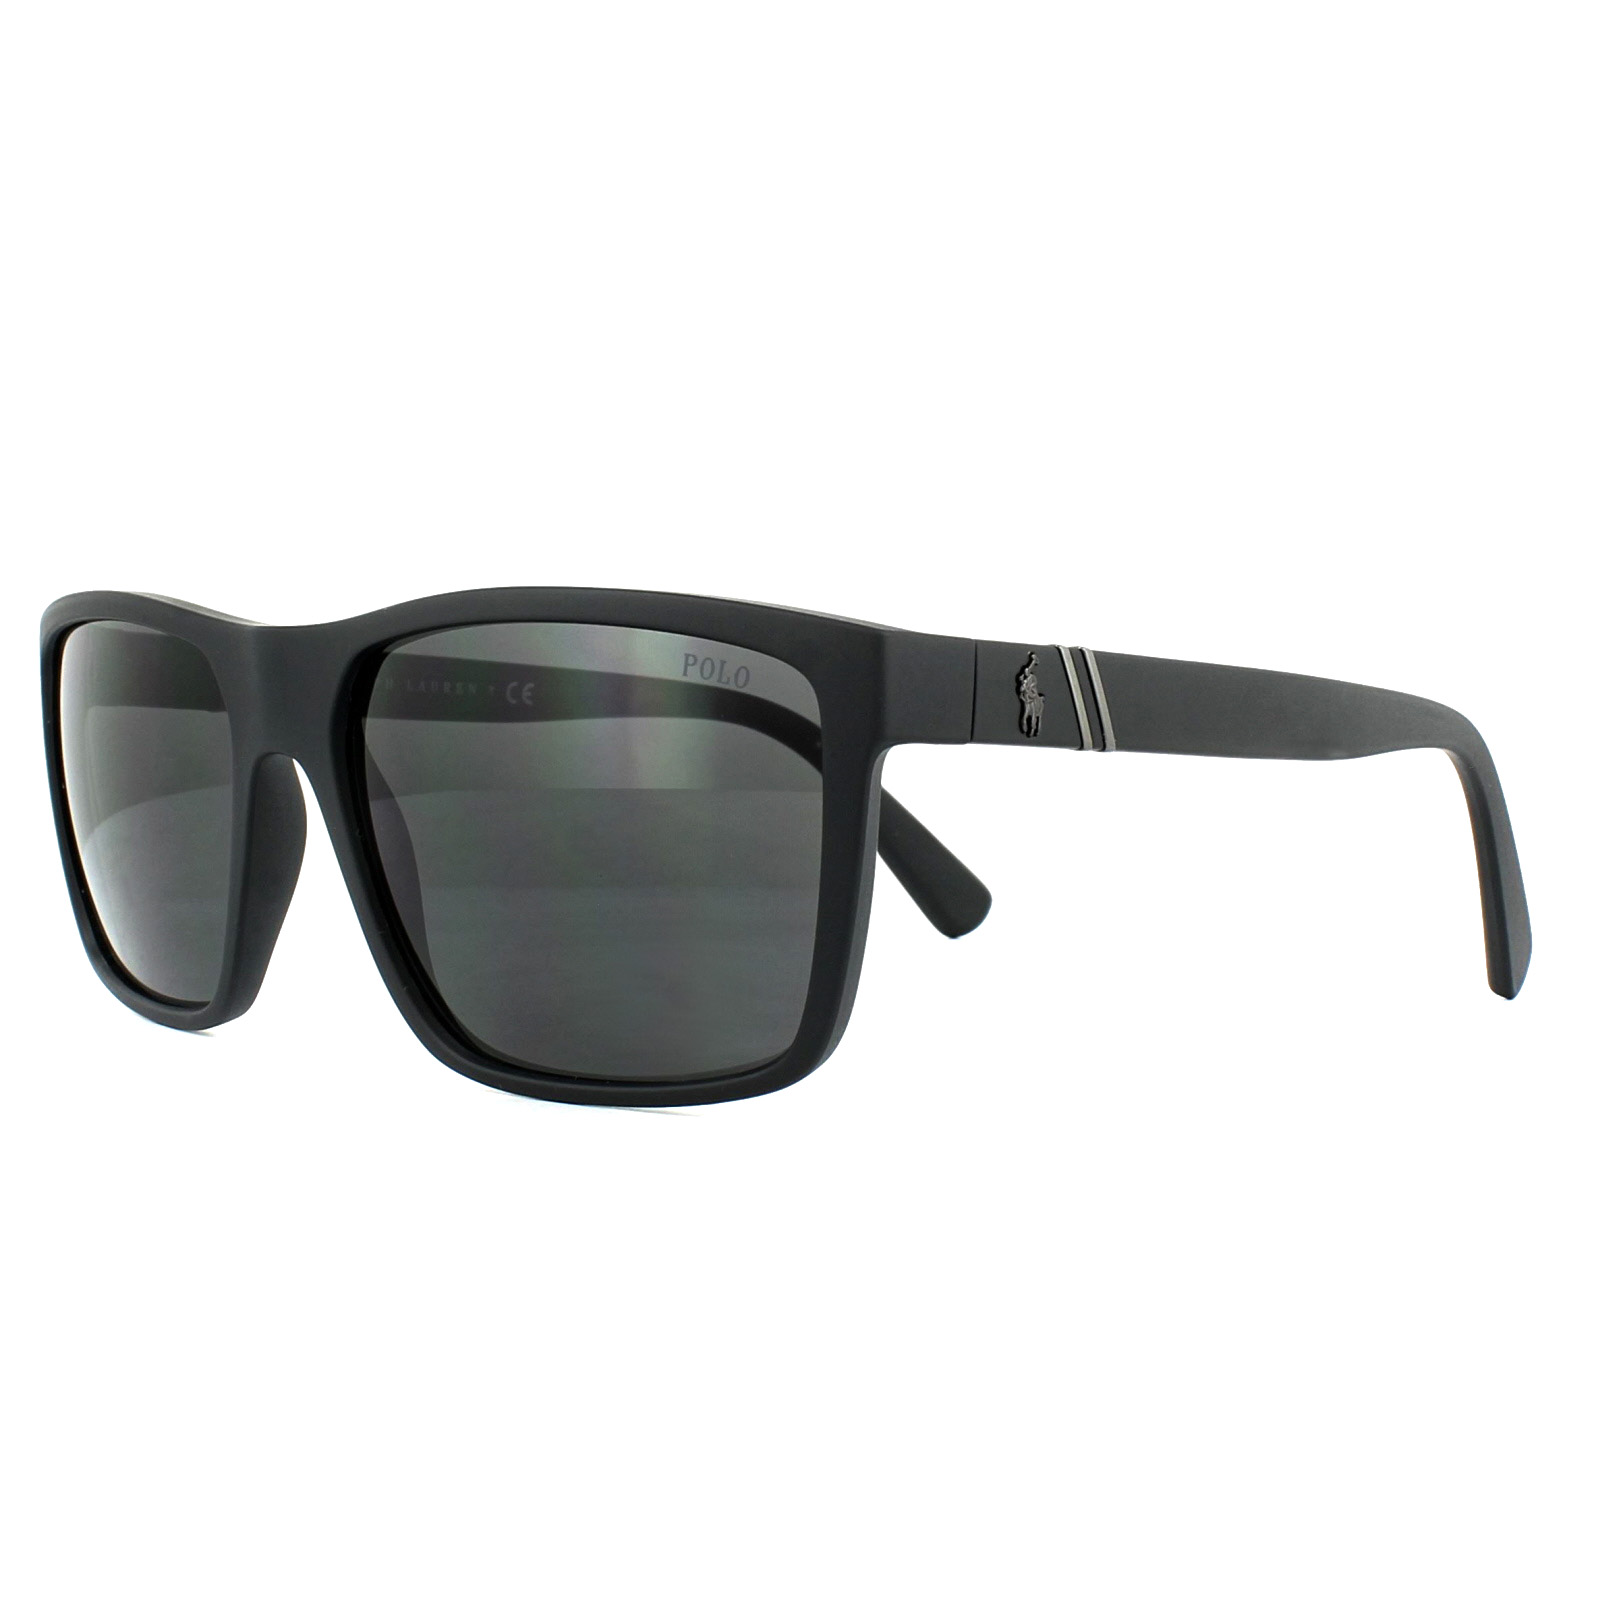 Sentinel Polo Ralph Lauren Sunglasses PH4133 528487 Matt Black Dark Grey ecd10bccc2